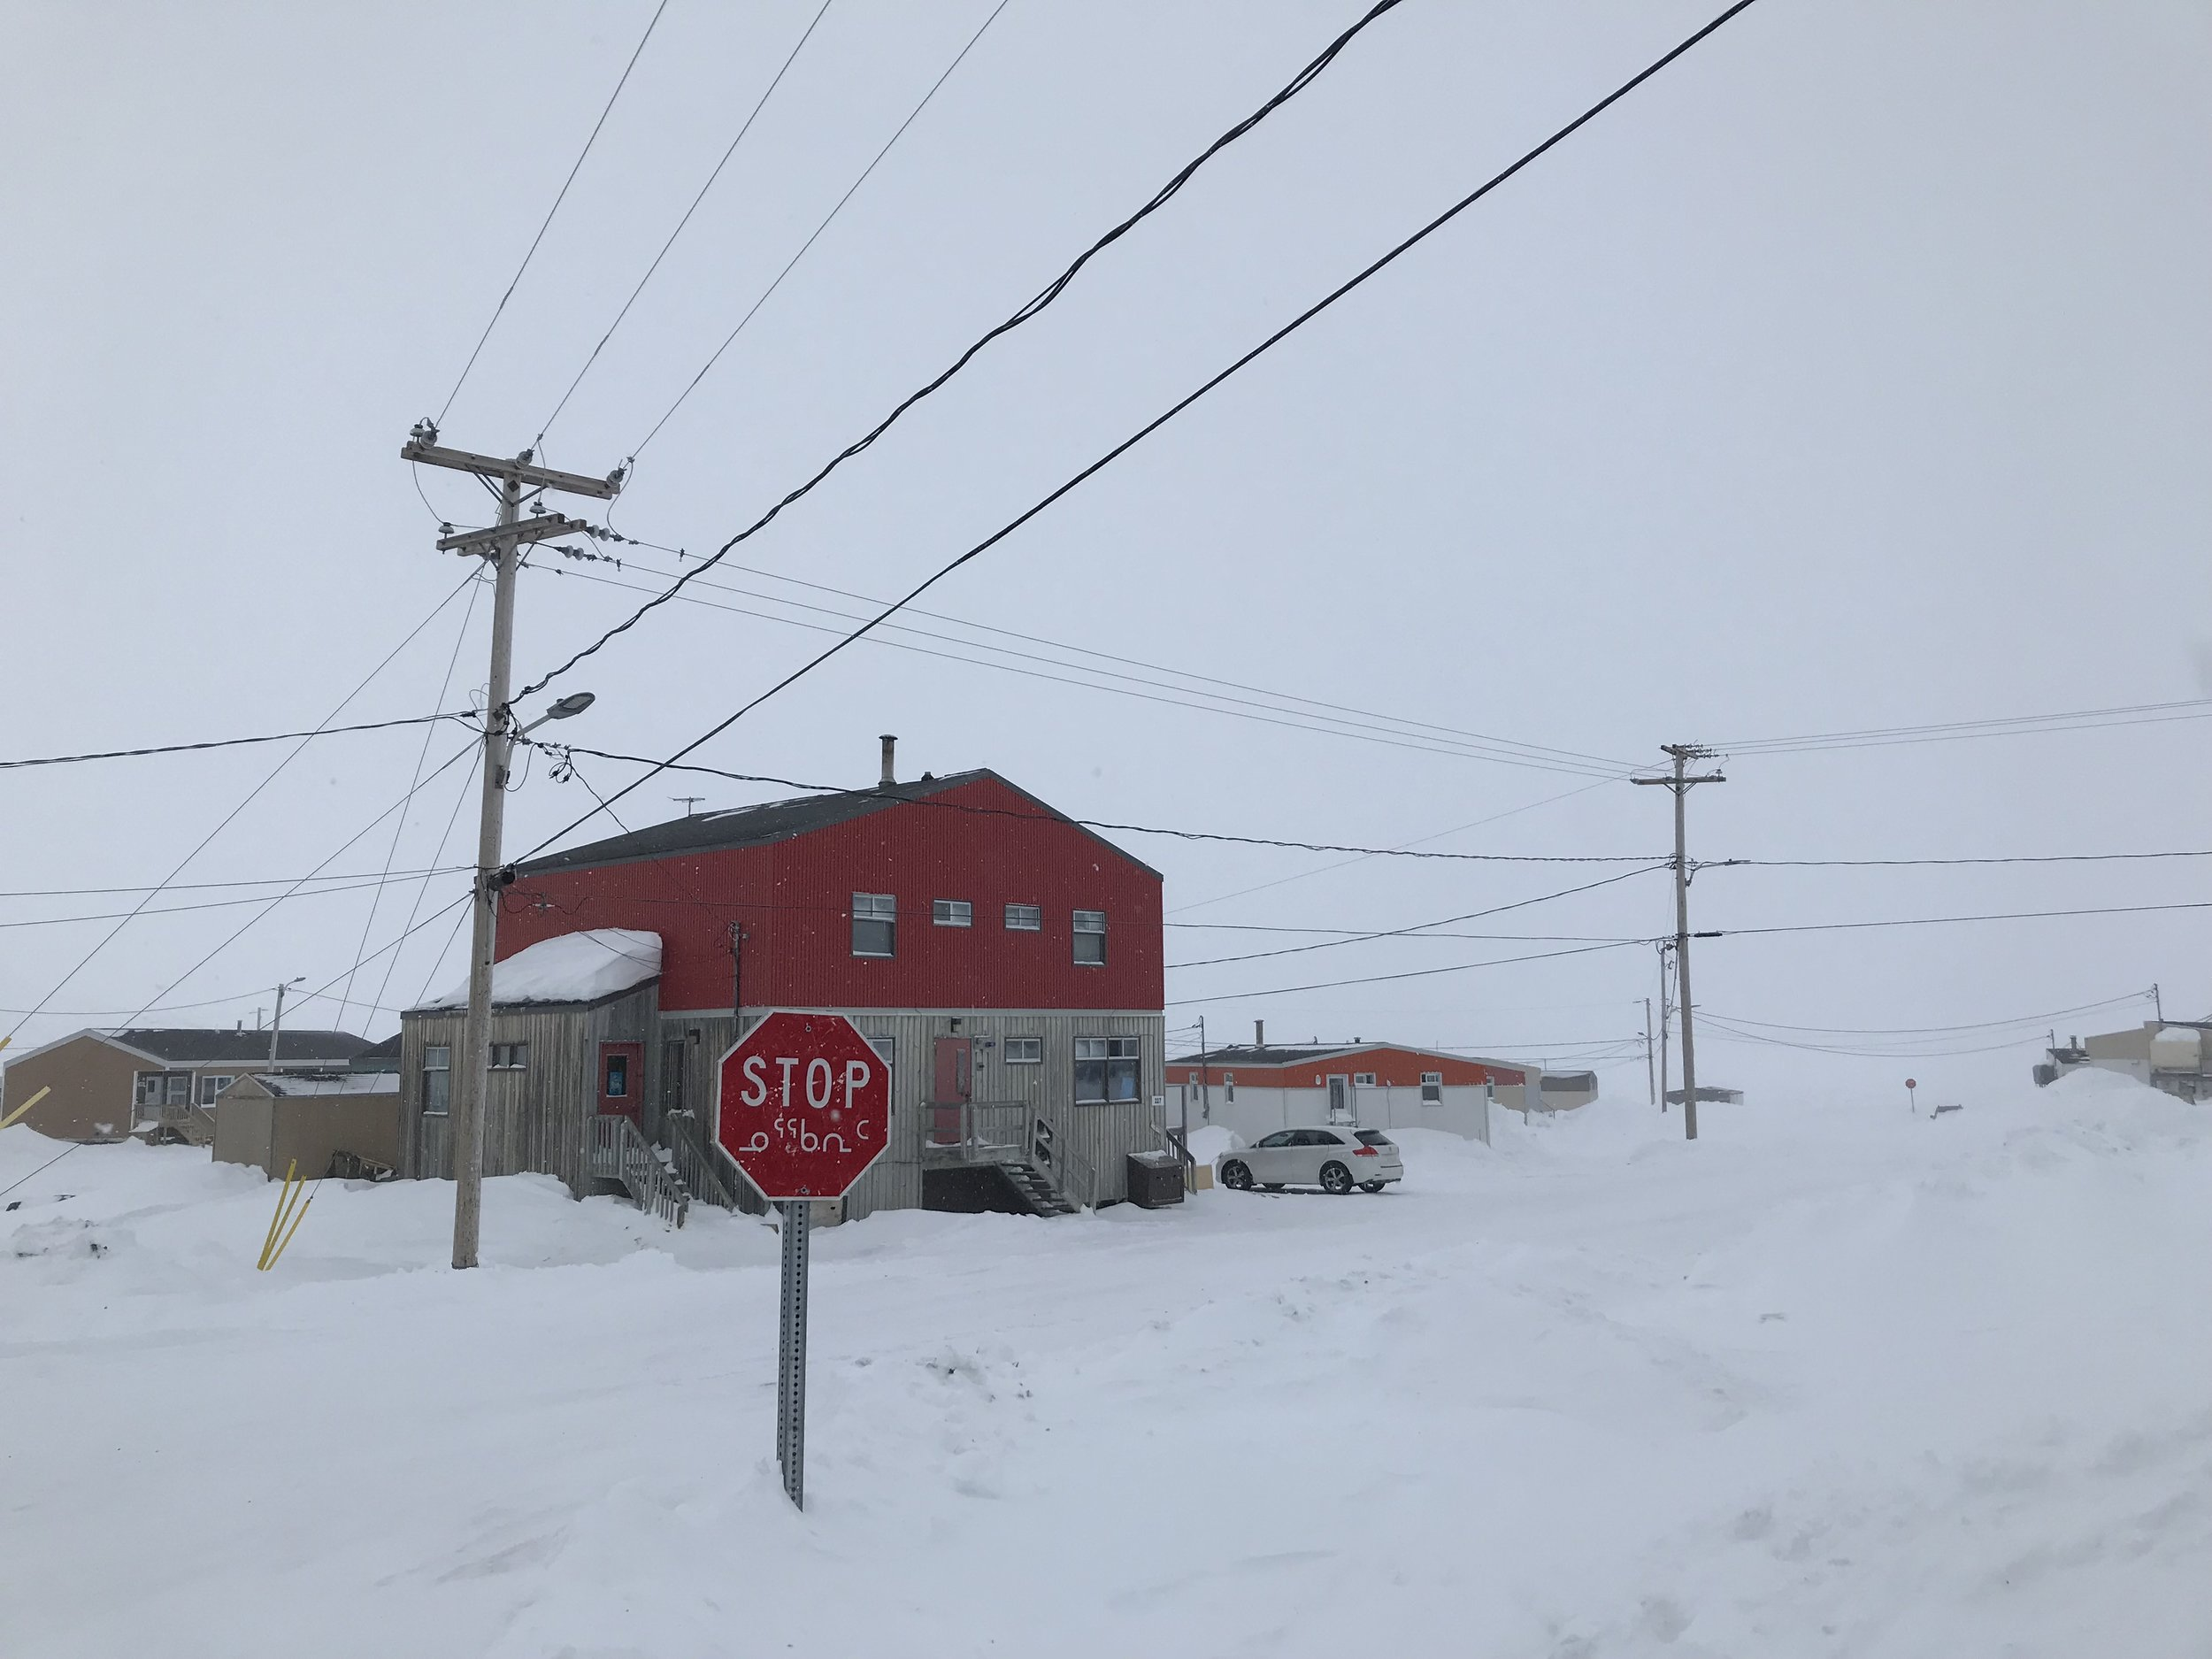 Can't get enough of the Inuktitut stop signs